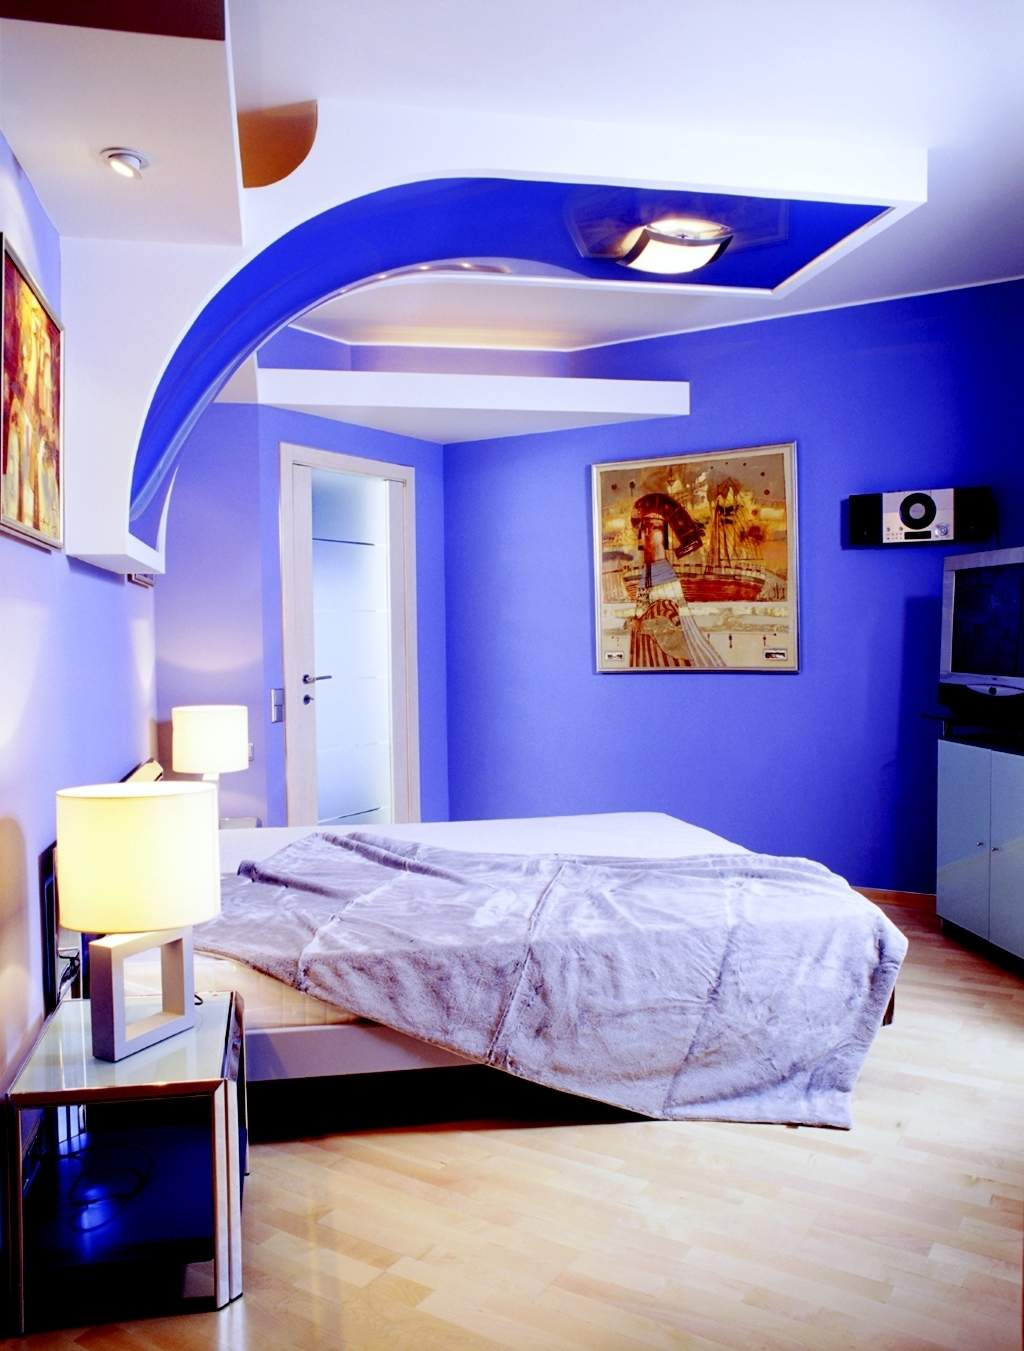 Super Bright Blue Best Paint Colors For Small Room With Canopy And White  Bedding And Beige